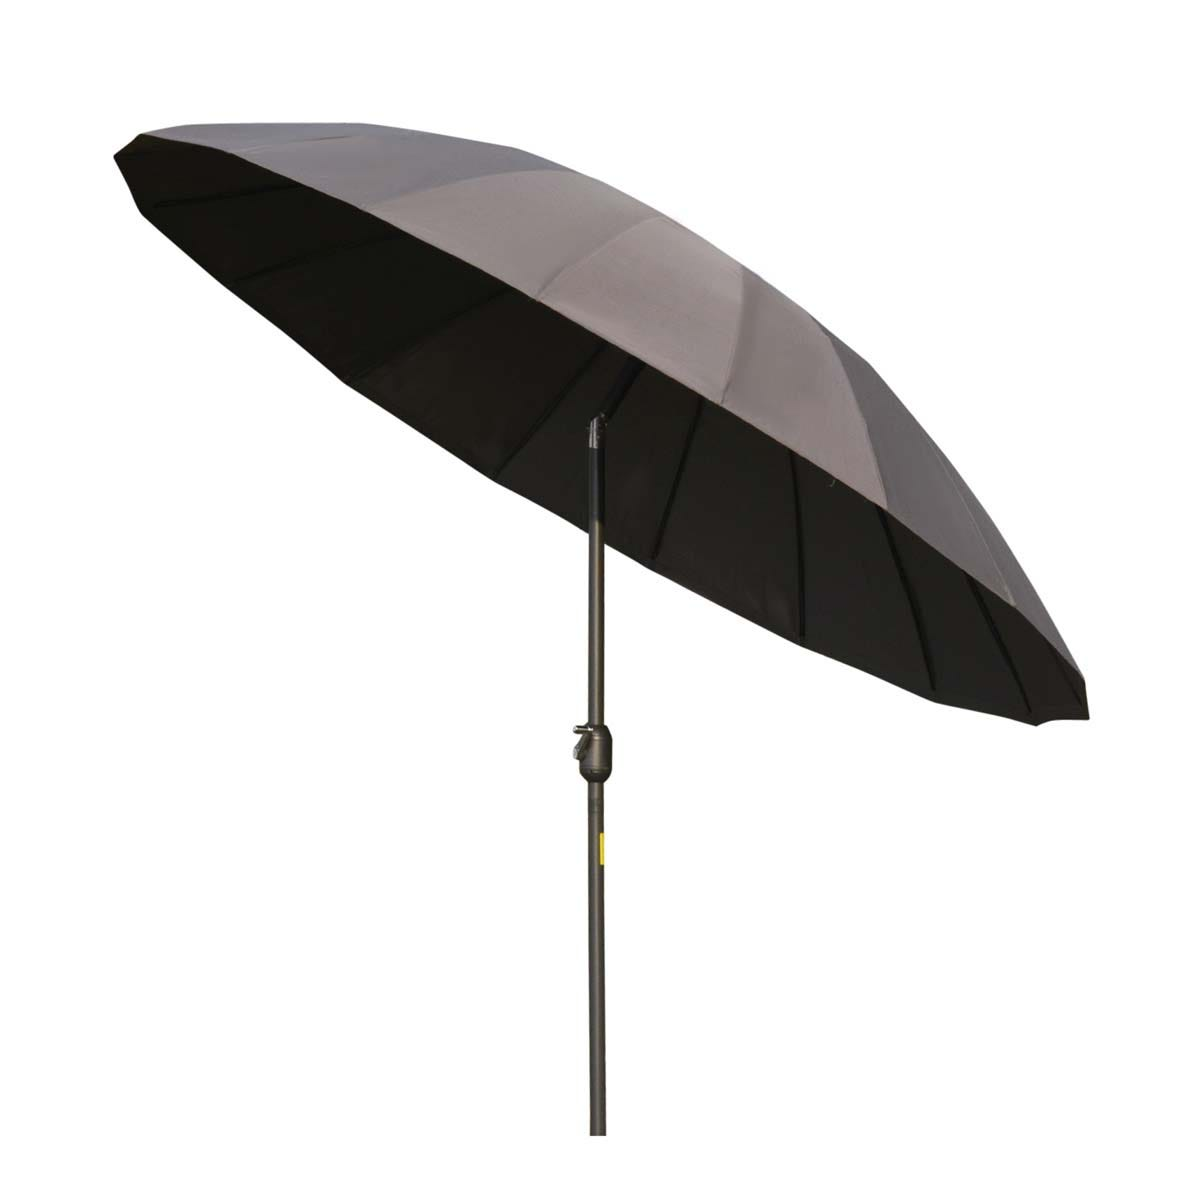 Outsunny 2.4m Round Parasol (base not included) - Grey